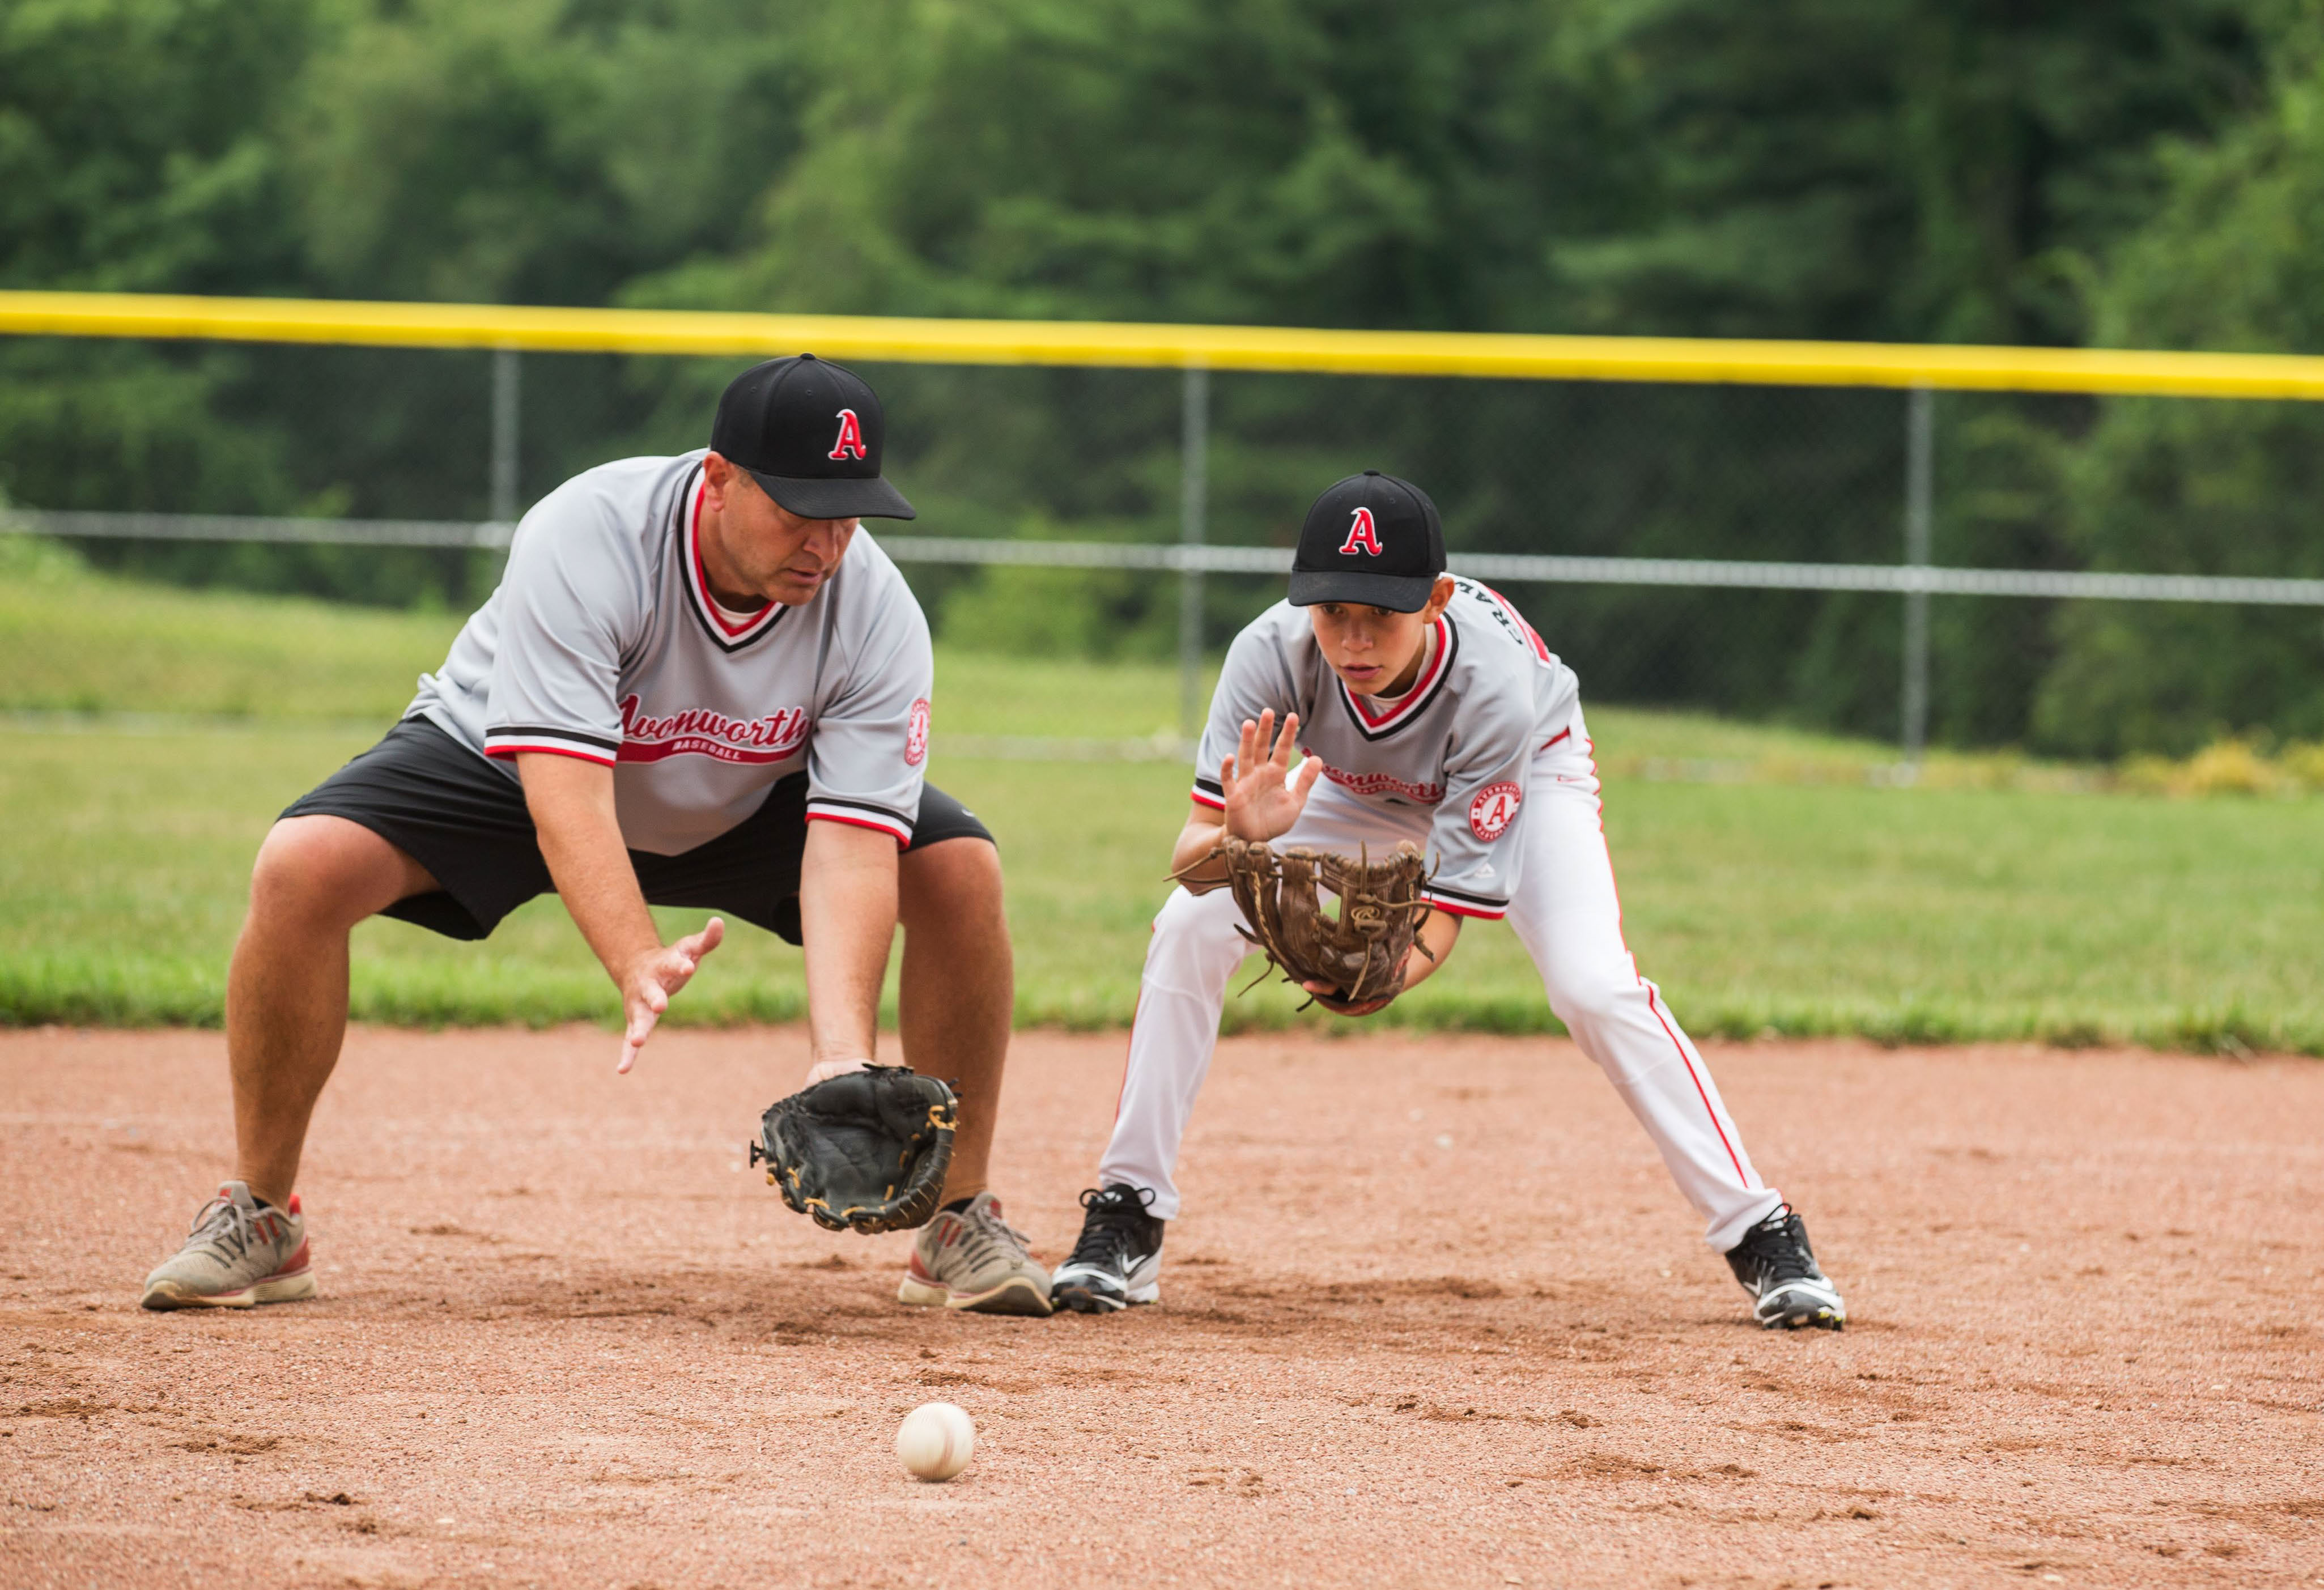 Youth Baseball Coaching Tips   PRO TIPS By DICK'S Sporting Goods